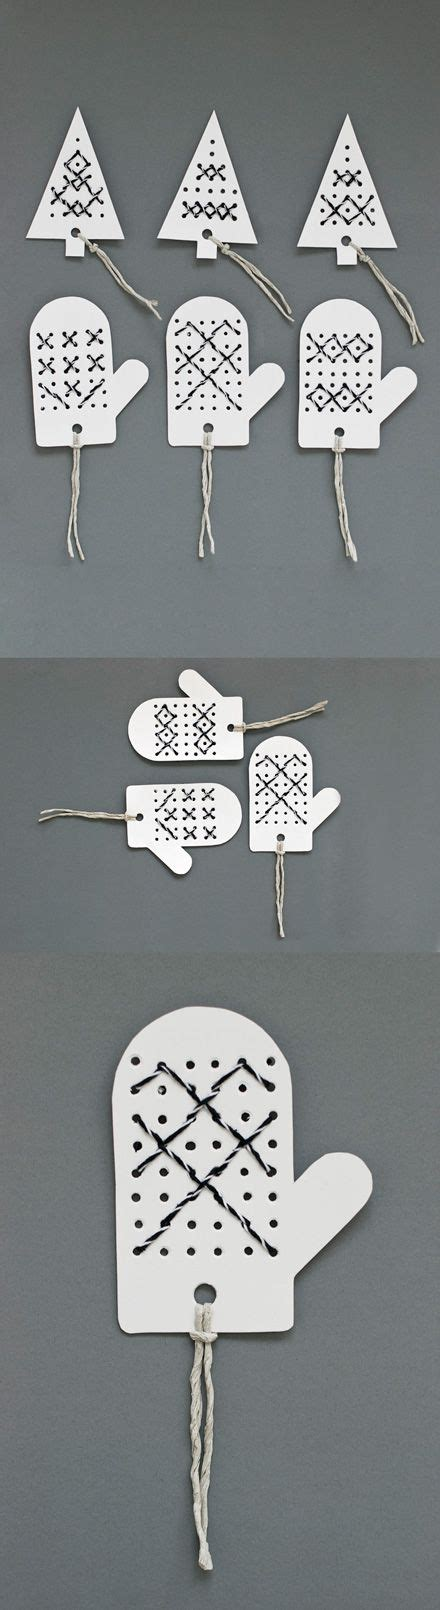 Pre Punched Craft Paper - gift tags or toppers made by stitching bakers